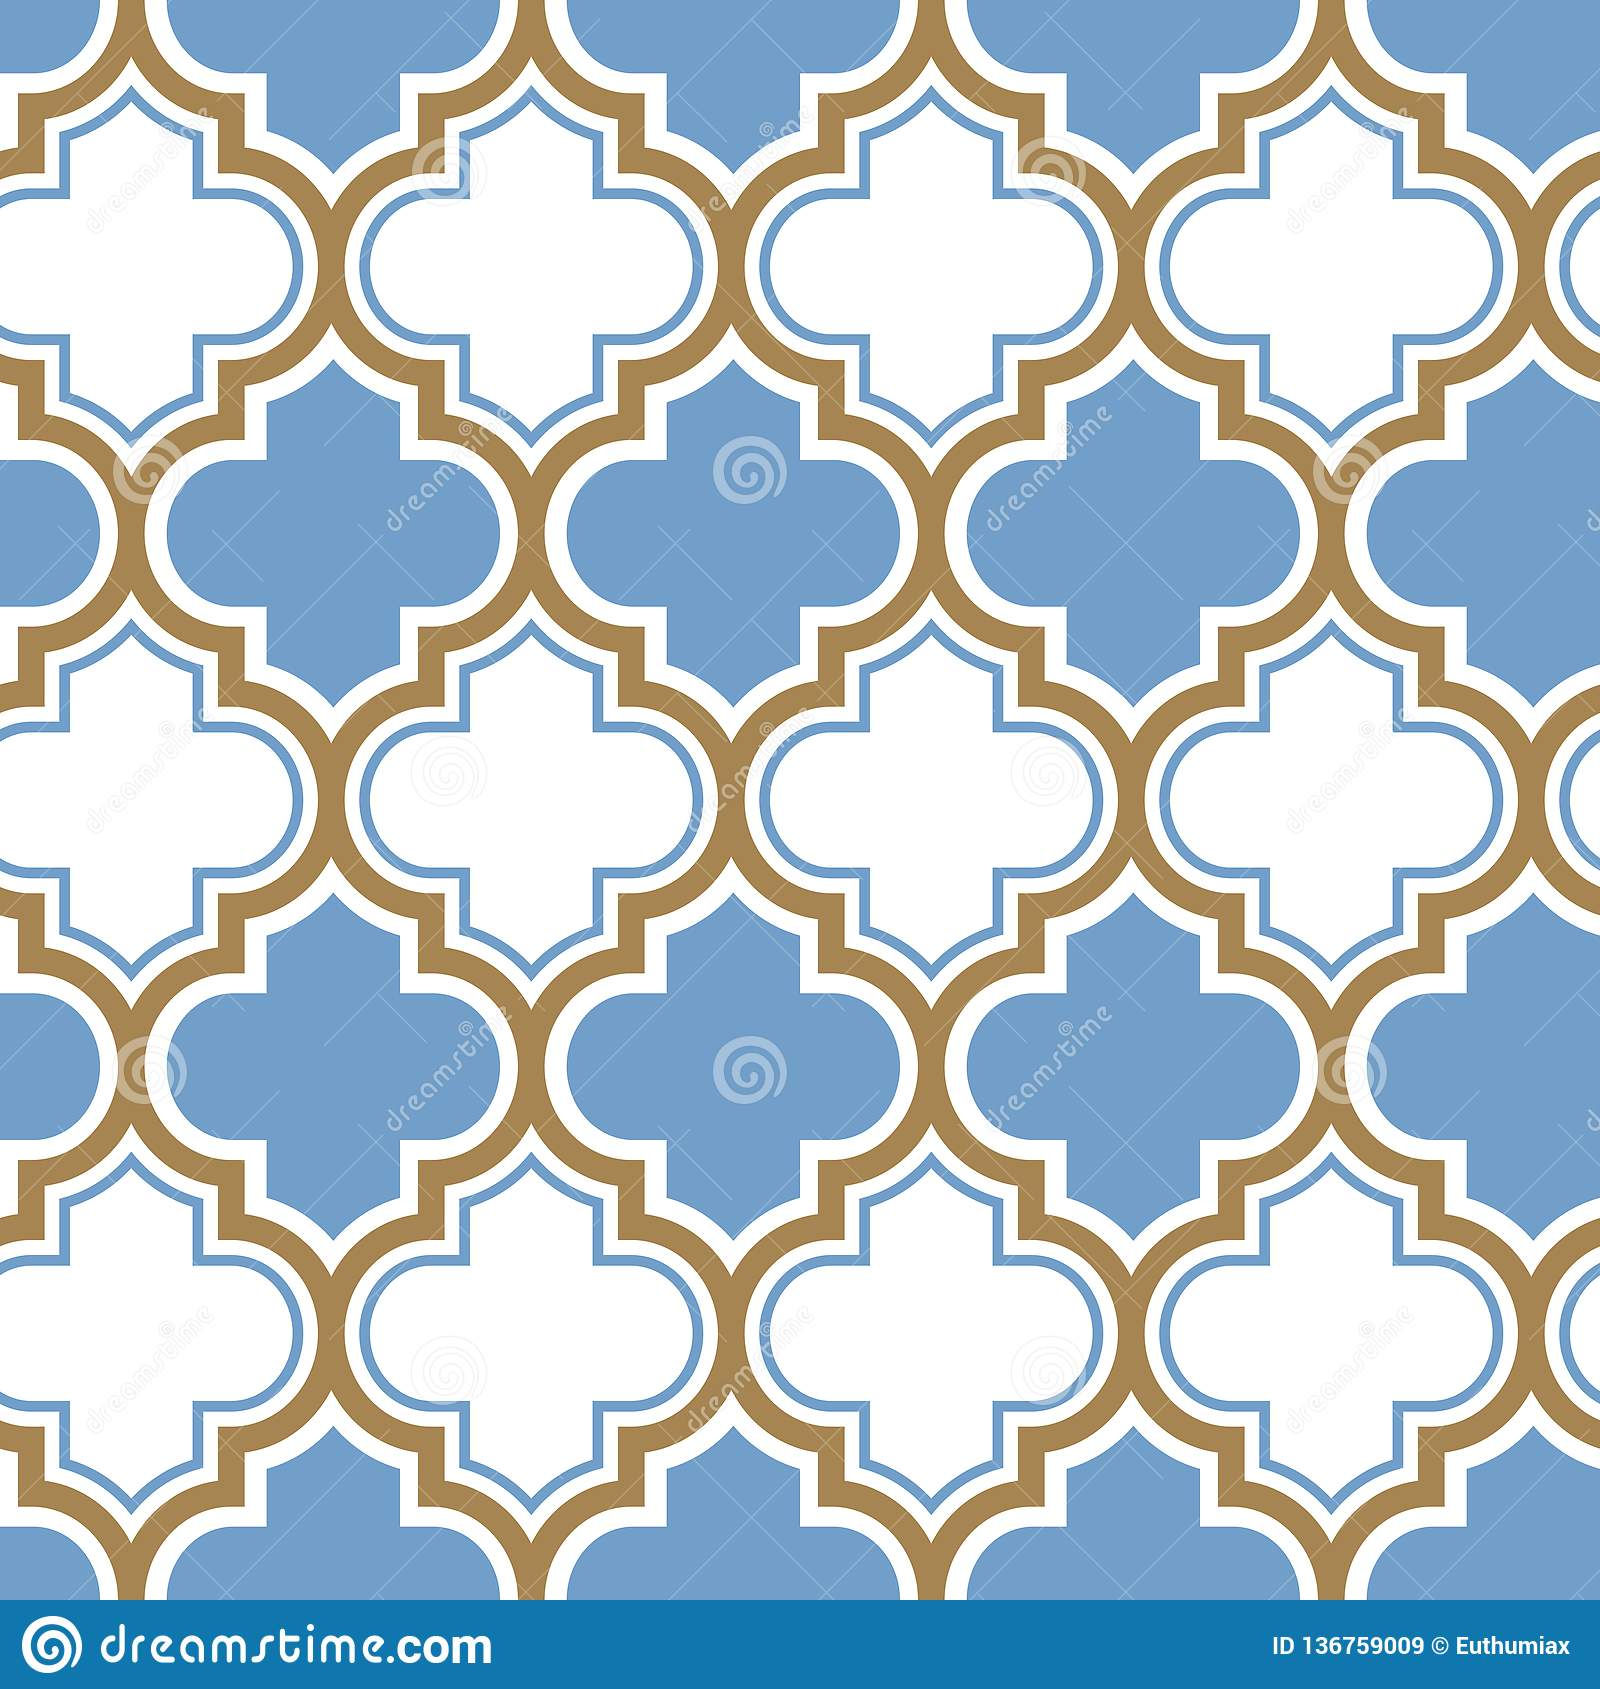 Vector moroccan repeat seamless pattern. Light blue, gold beige line on white background.